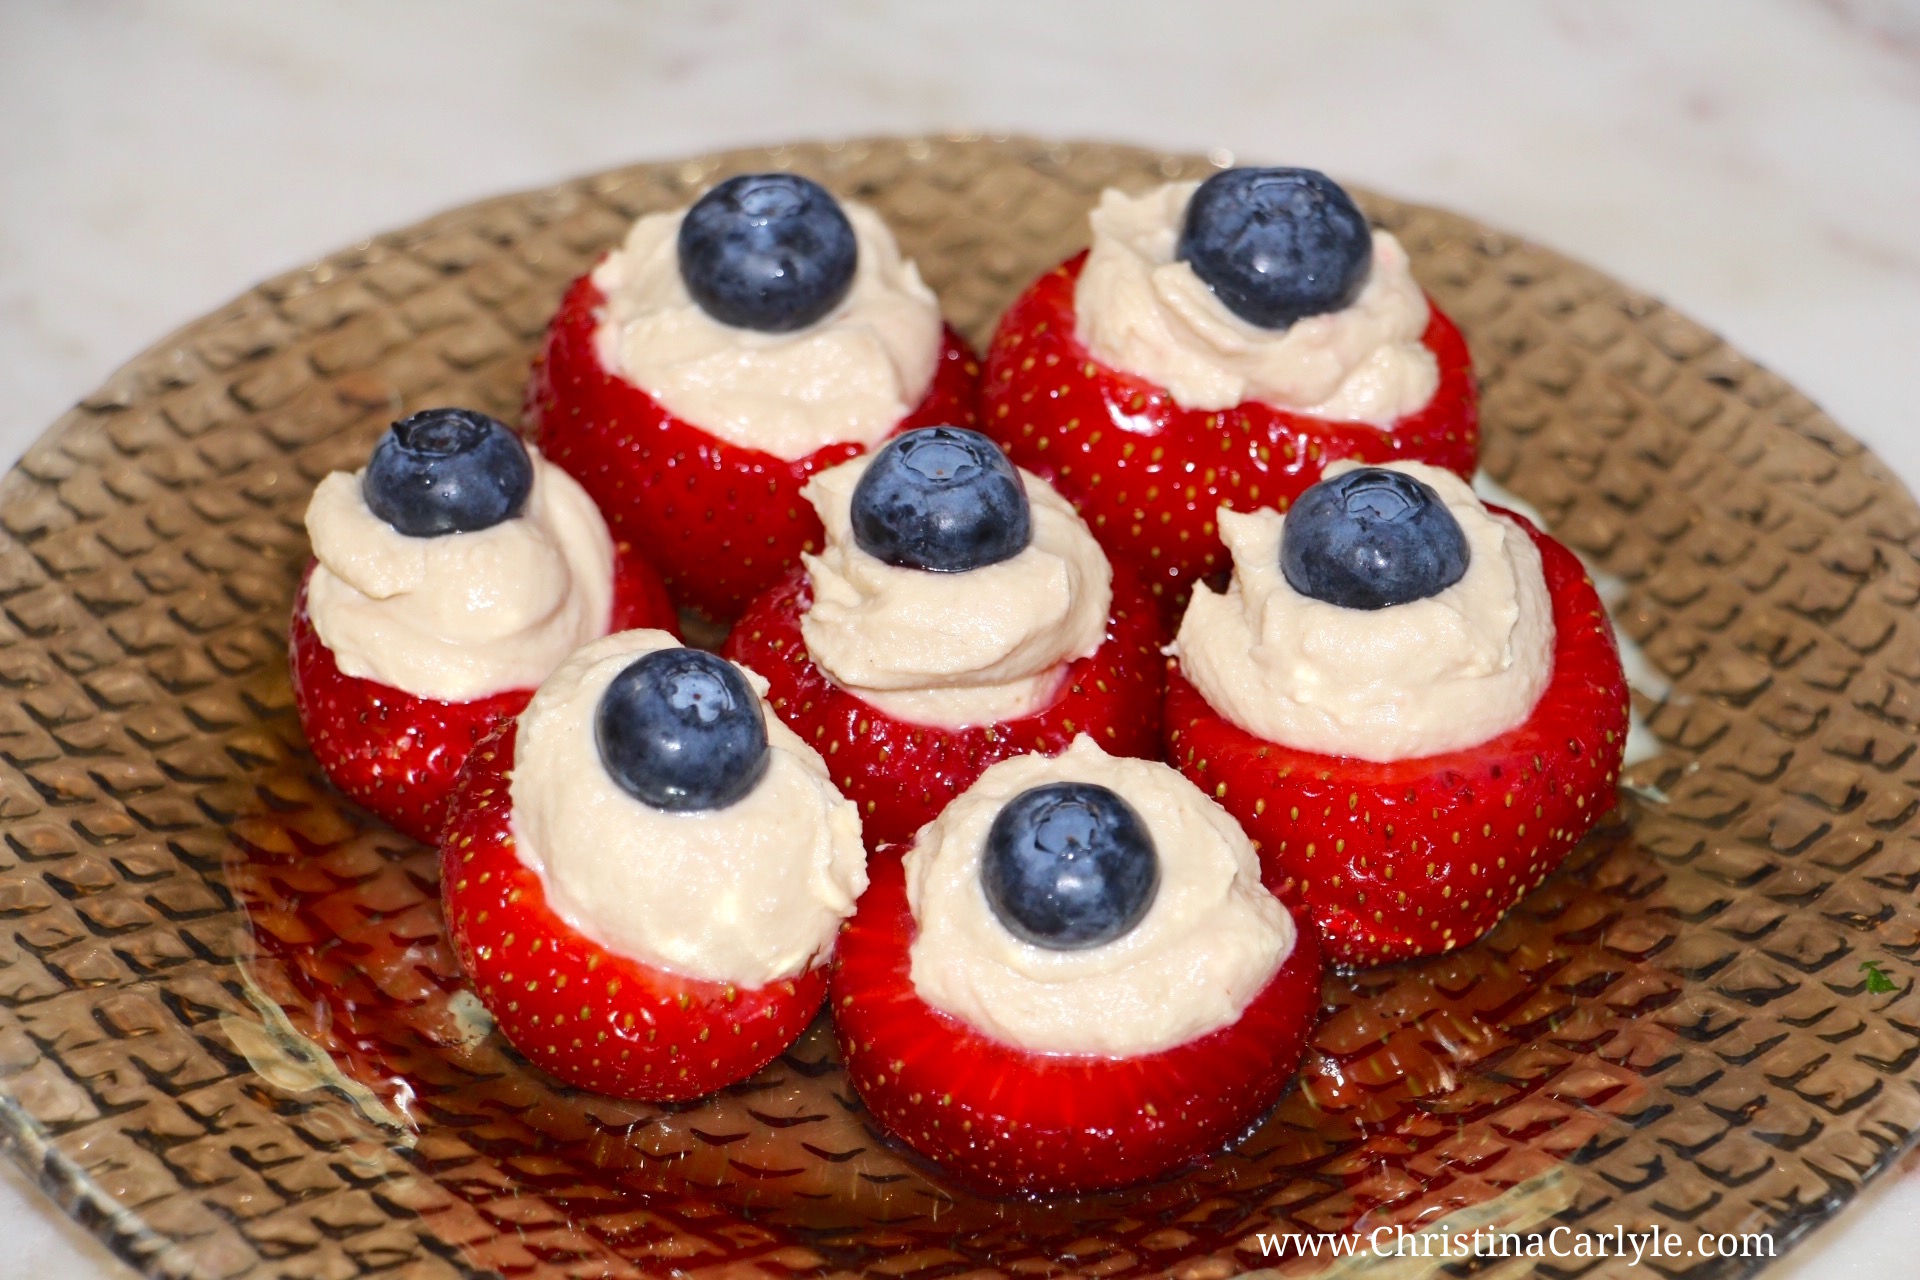 Red white and Blue Hummus Blueberry and Strawberry Bites Recipe | Healthy 4th of July Recipes from nutritionist Christina Carlyle https://christinacarlyle.com/healthy-4th-of-july-recipes/